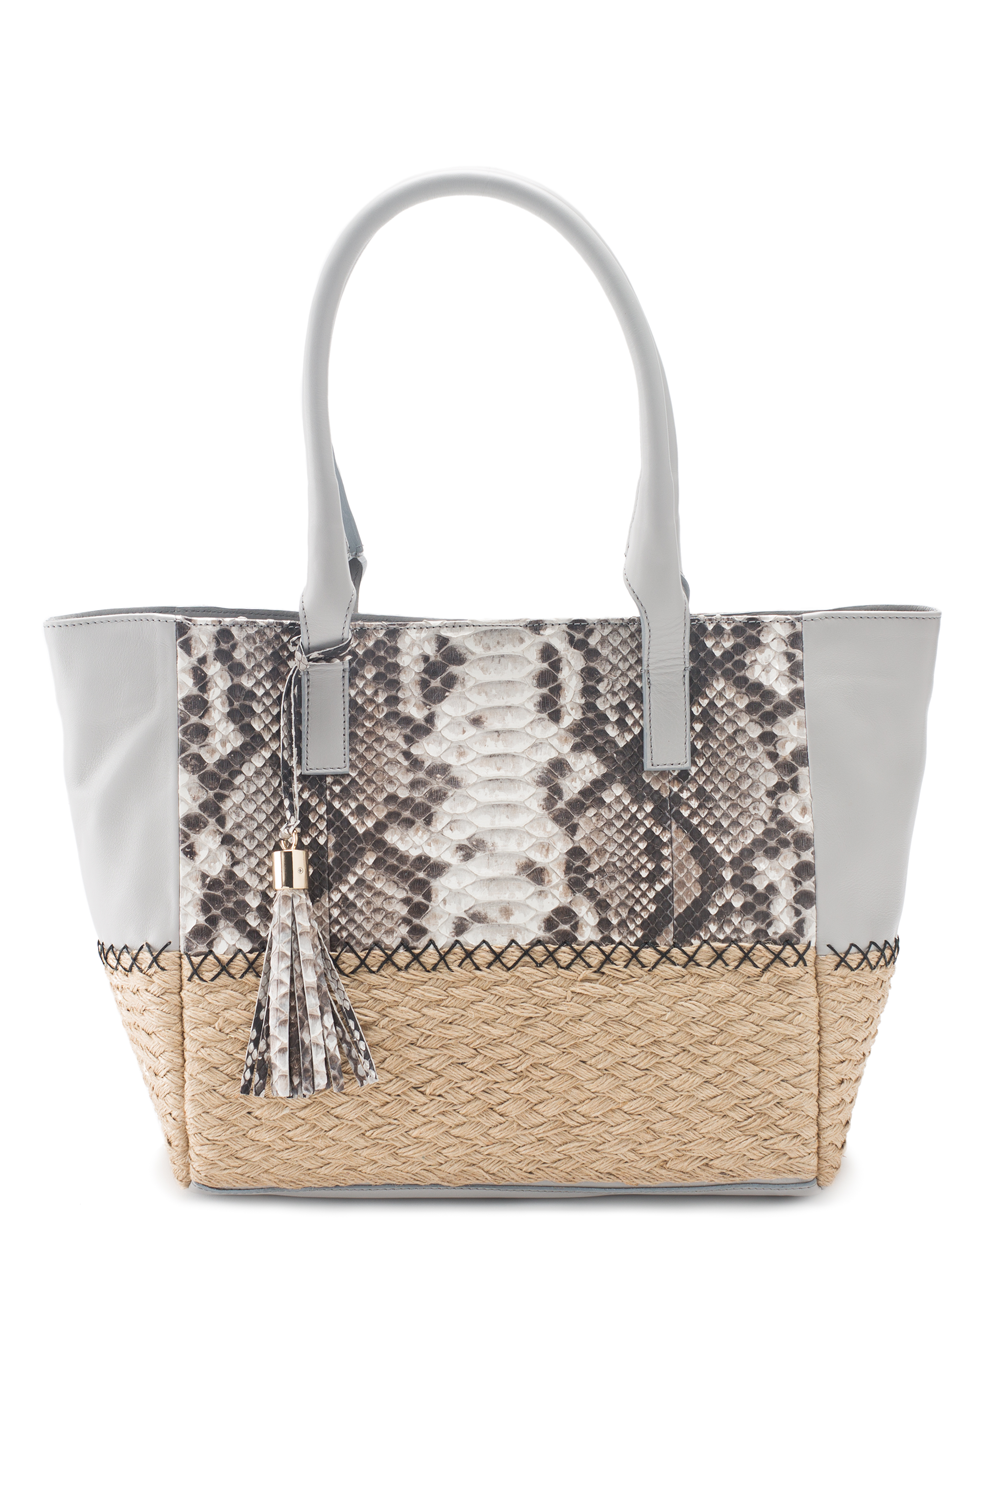 Mel Boteri | Harbor Grey Python Leather & Espadrille 'Ellis Mini' Tote | Front View